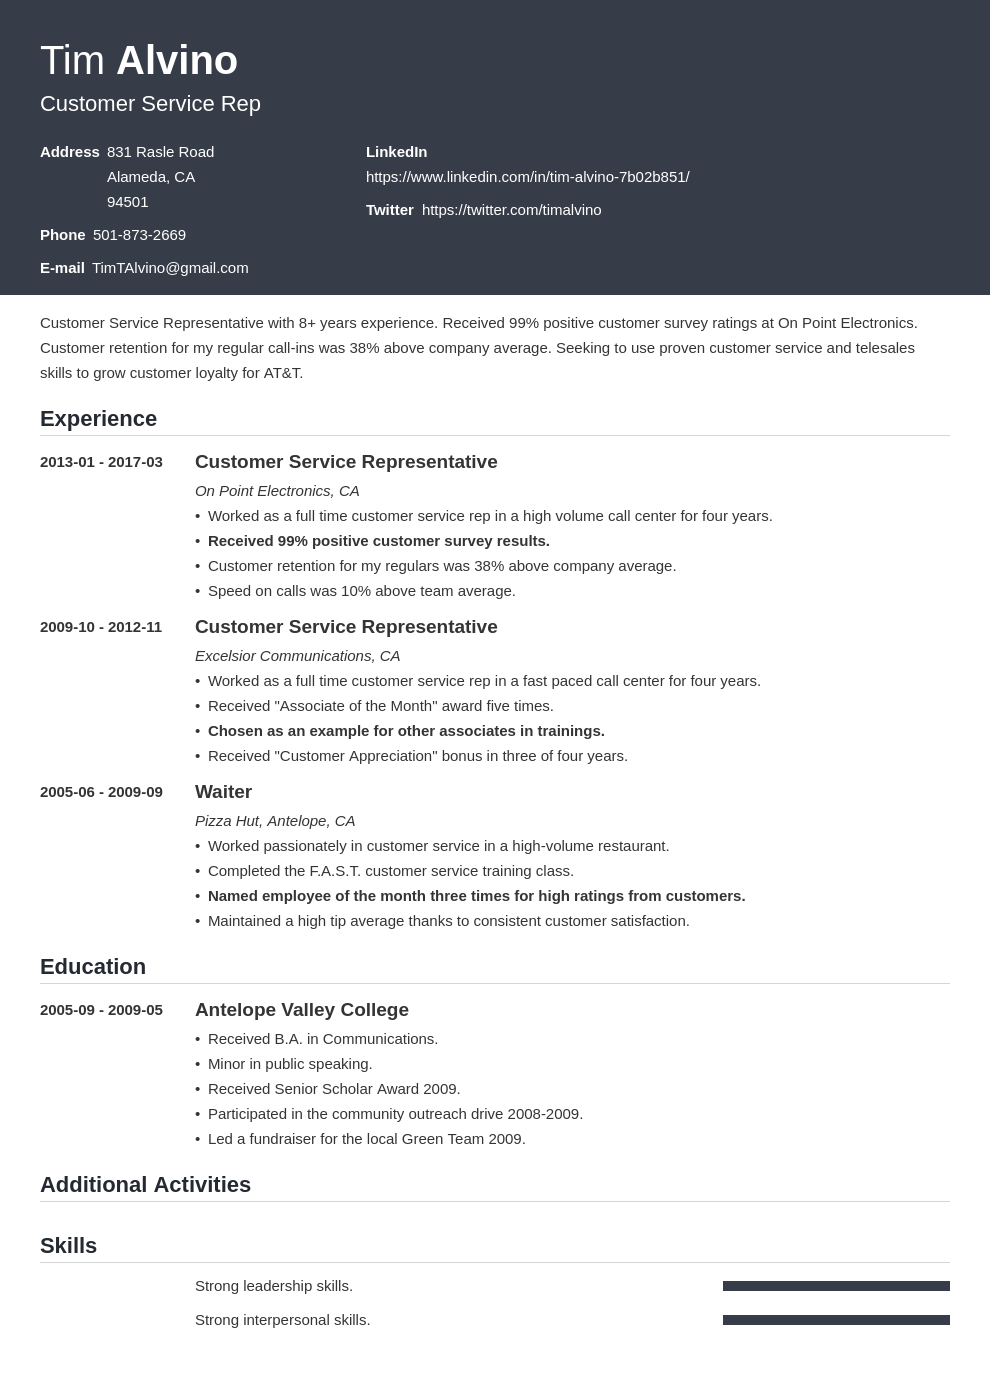 Customer Service Representative Resume Examples [19 Tips]